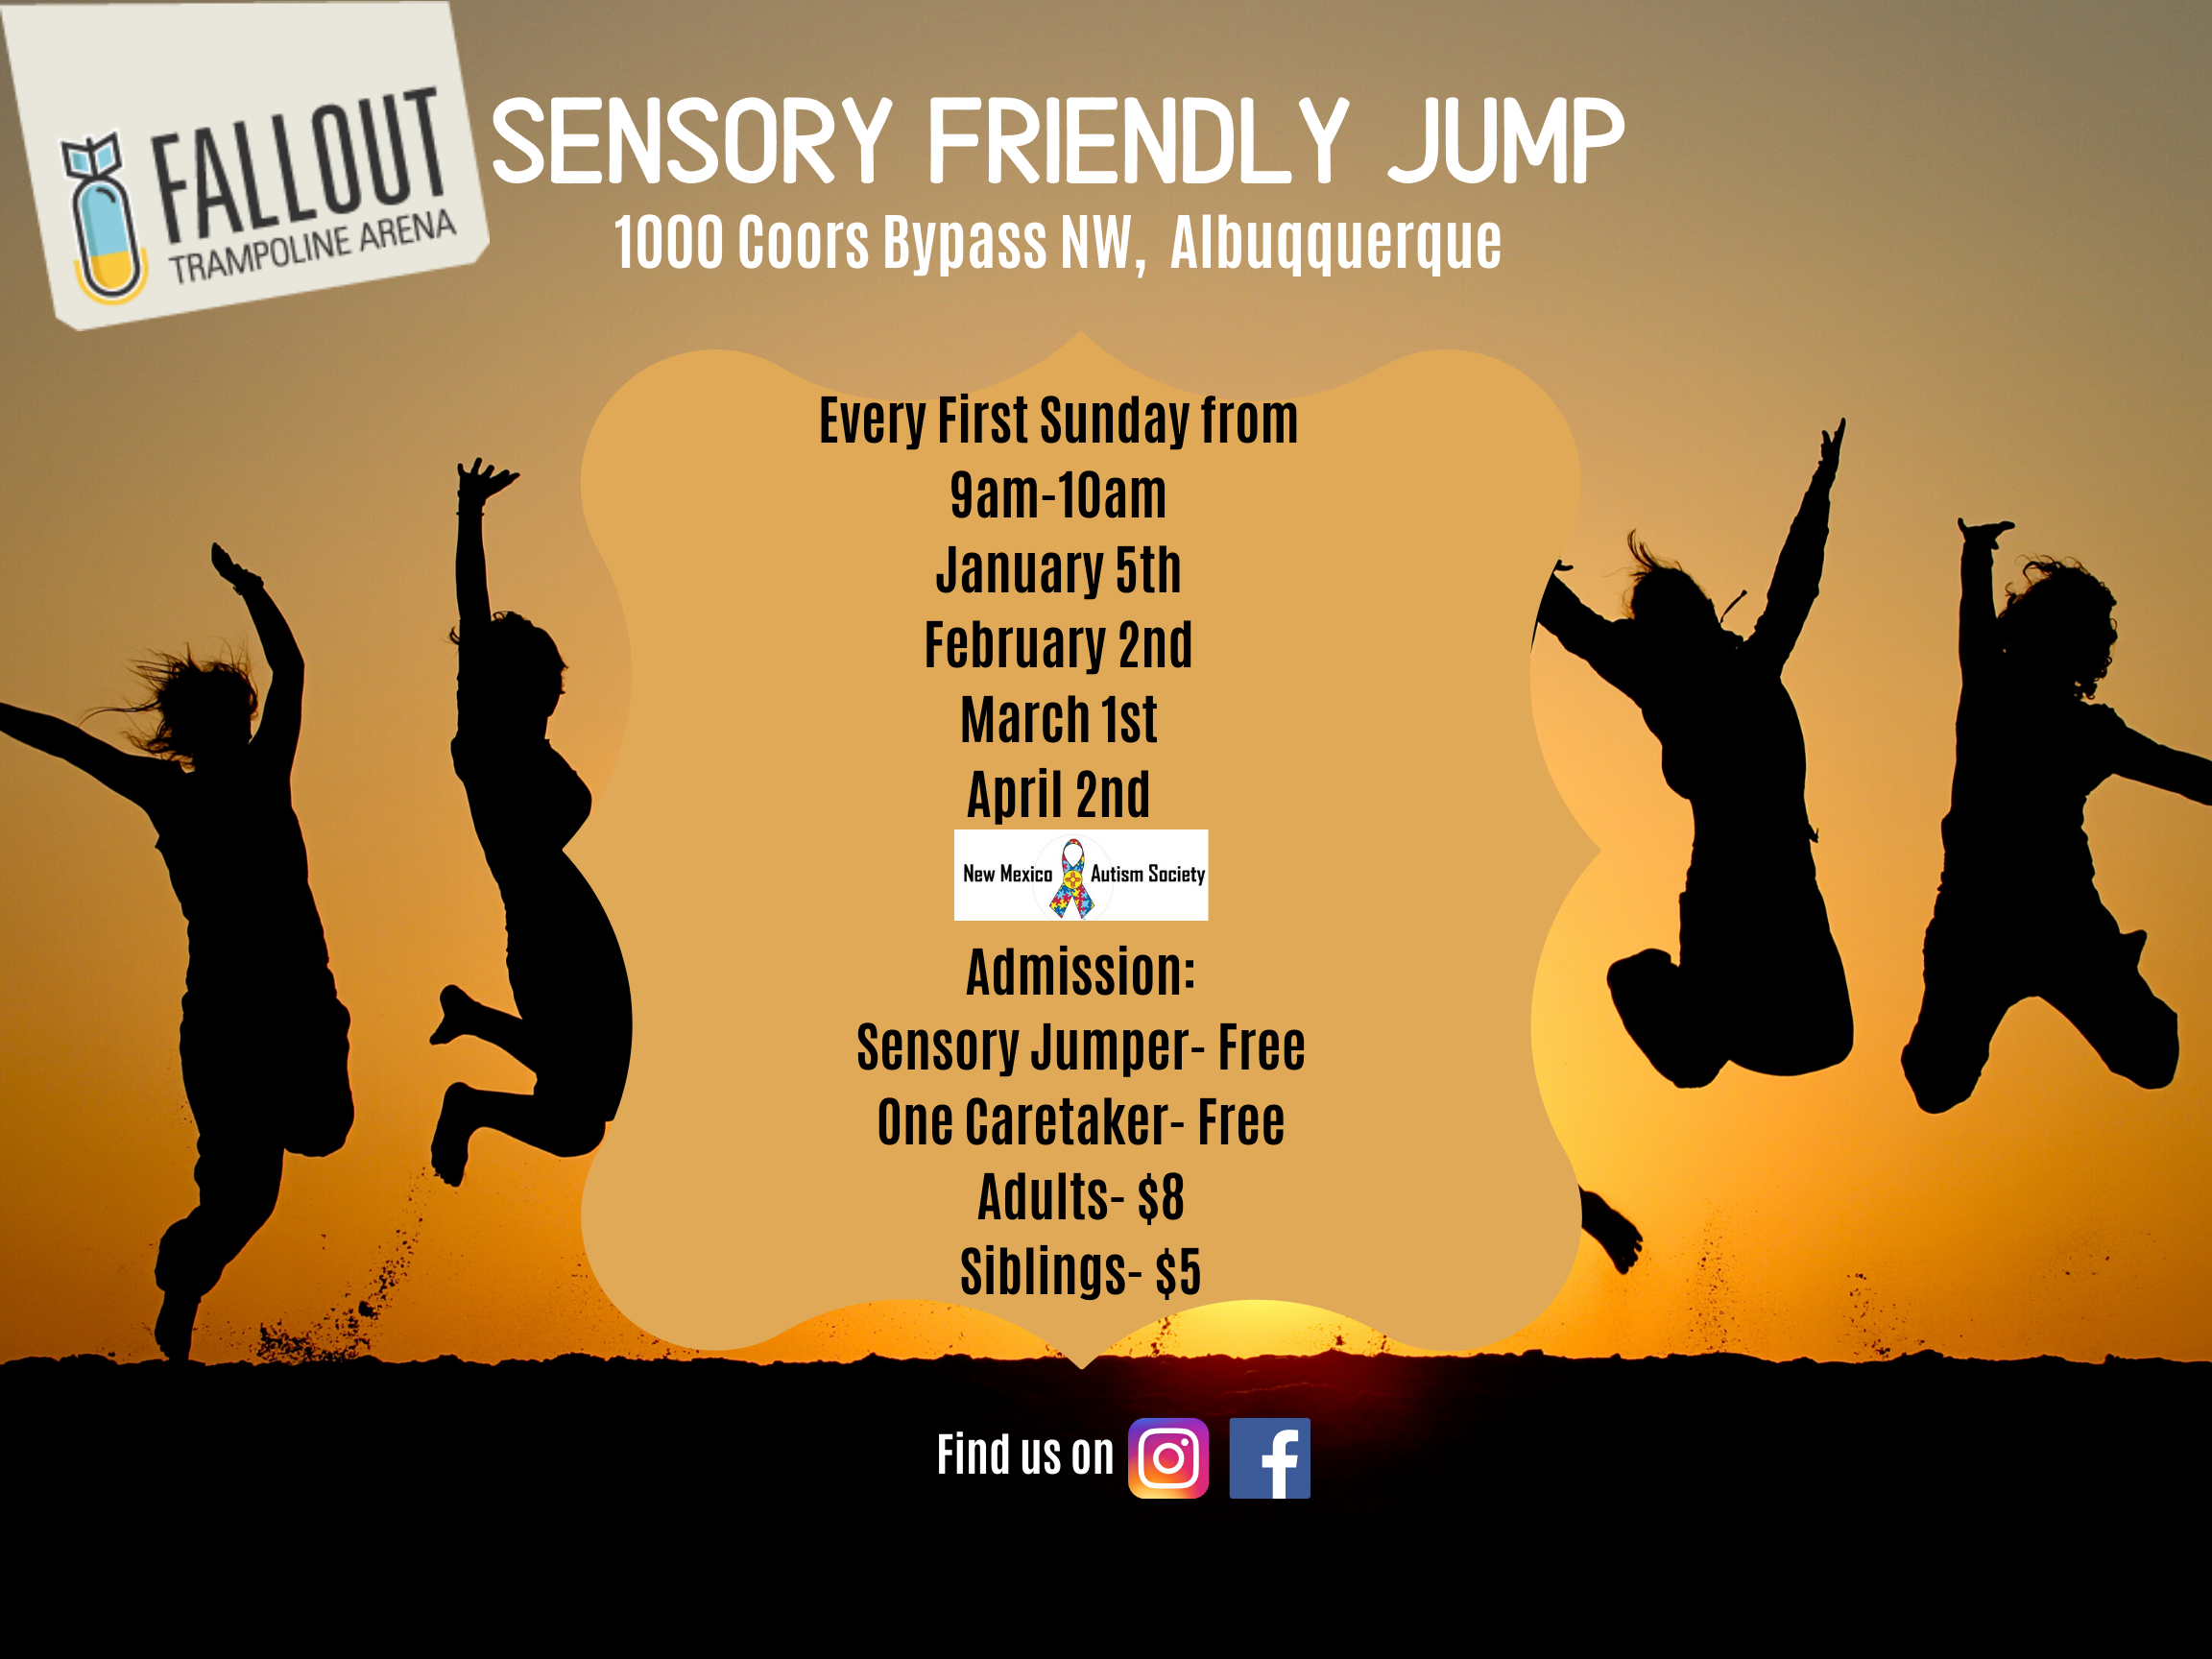 Sensory Friendly Jump at Fallout Trampoline Arena Image